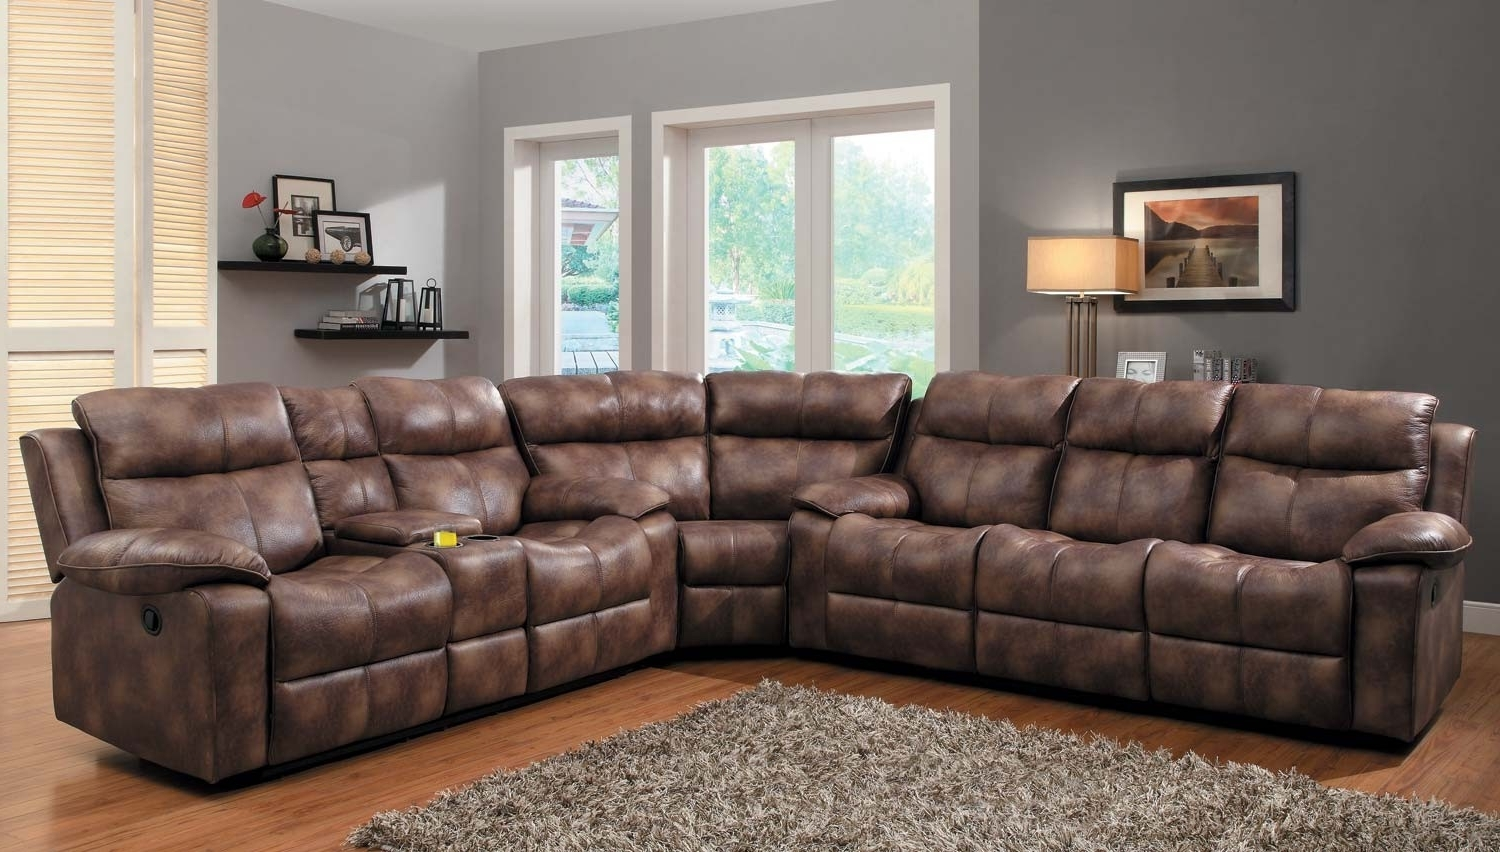 Favorite Reclining Sectional Sofas Within Unique Microfiber Reclining Sectional Sofa – Buildsimplehome (View 18 of 20)